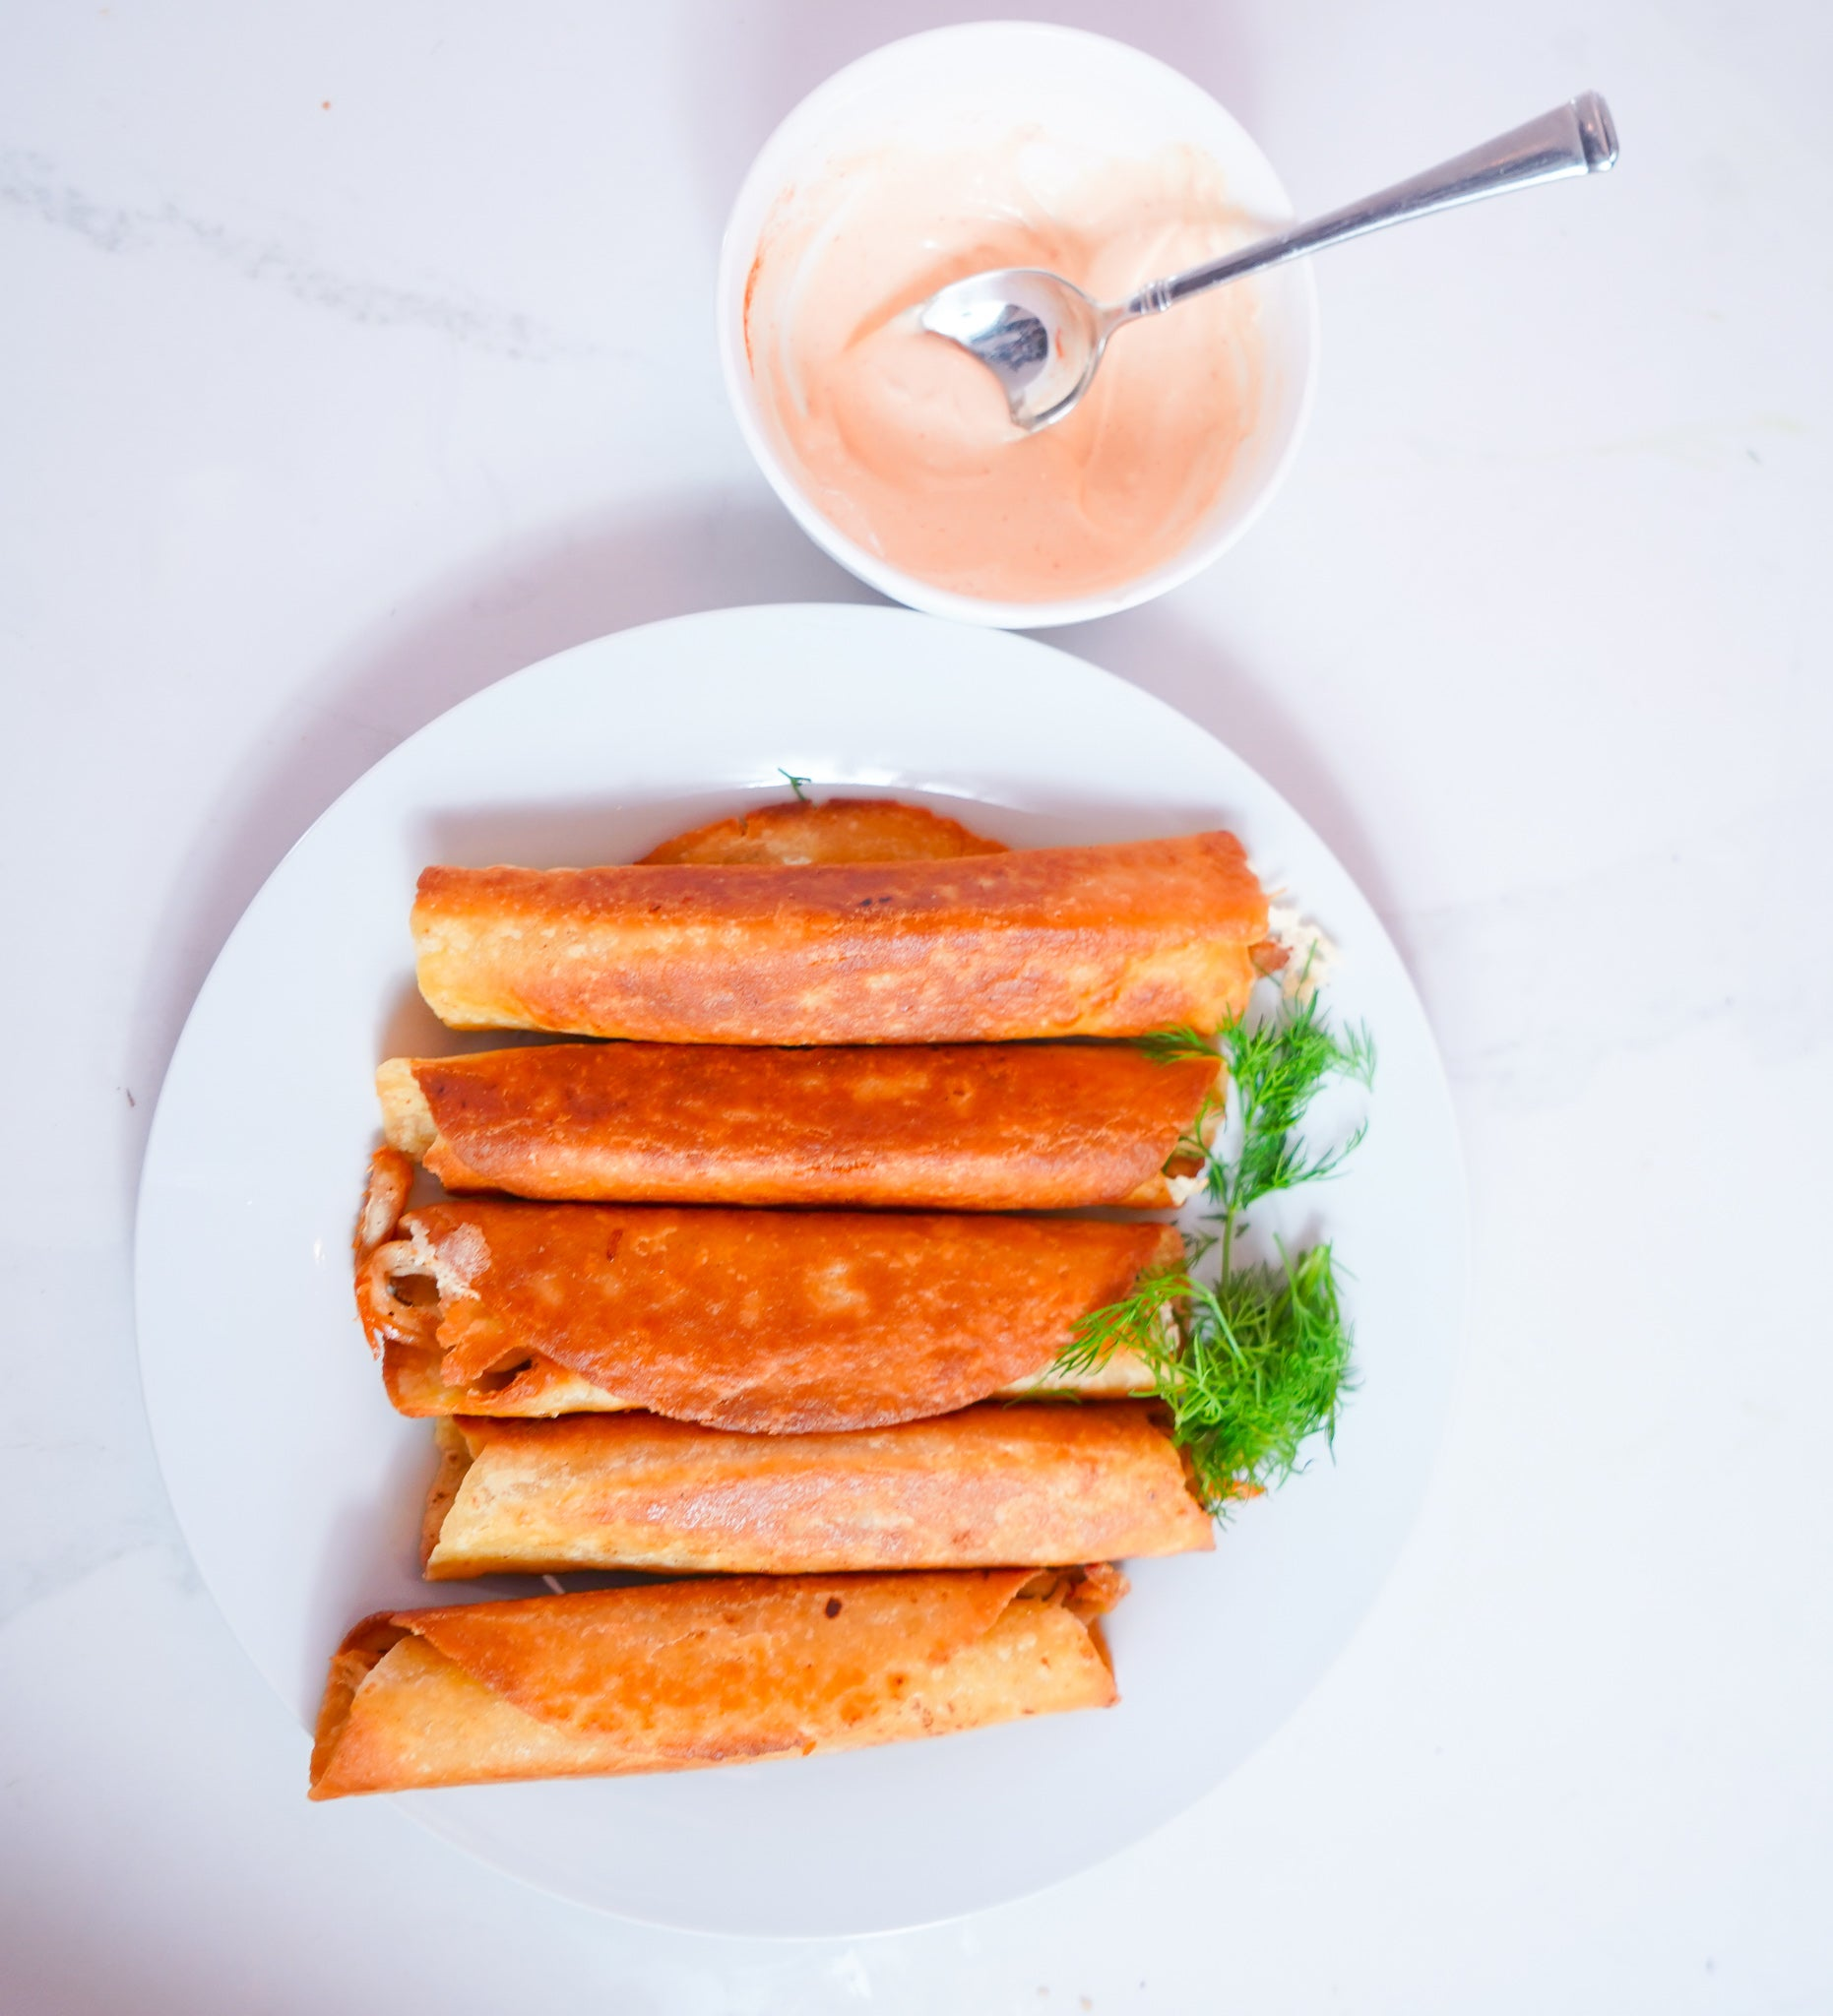 Real Shredded Chicken Dairy Free Taquitos